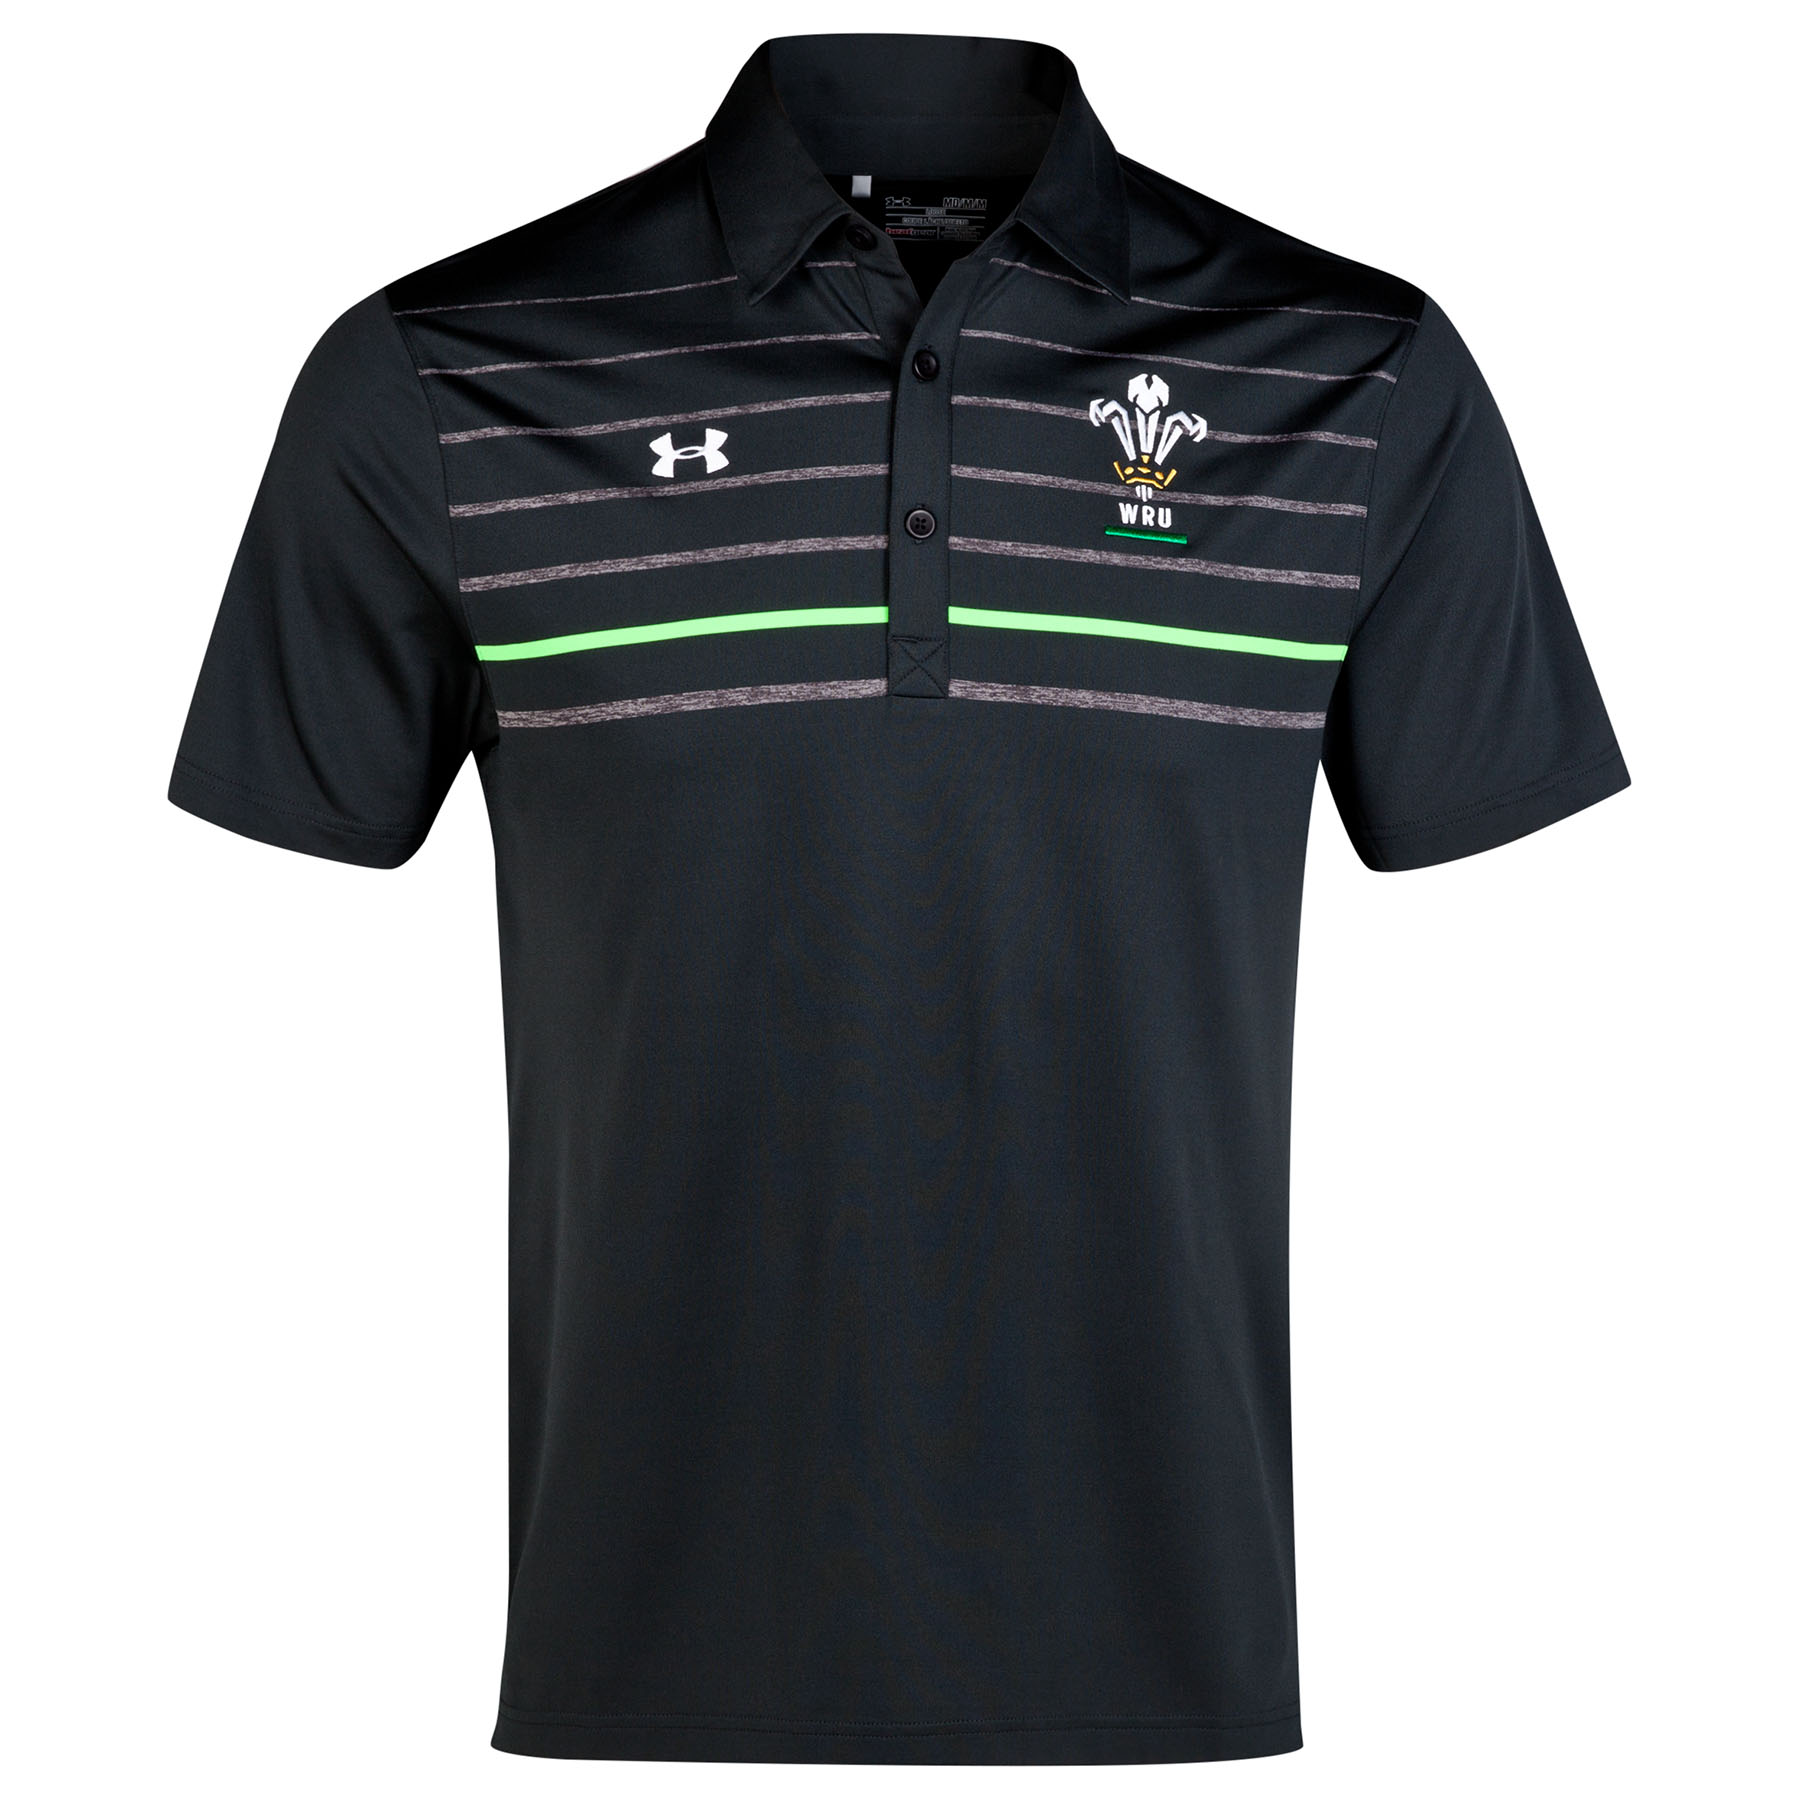 Wales Rugby Union Operative Stripe Polo 2014/15 Black